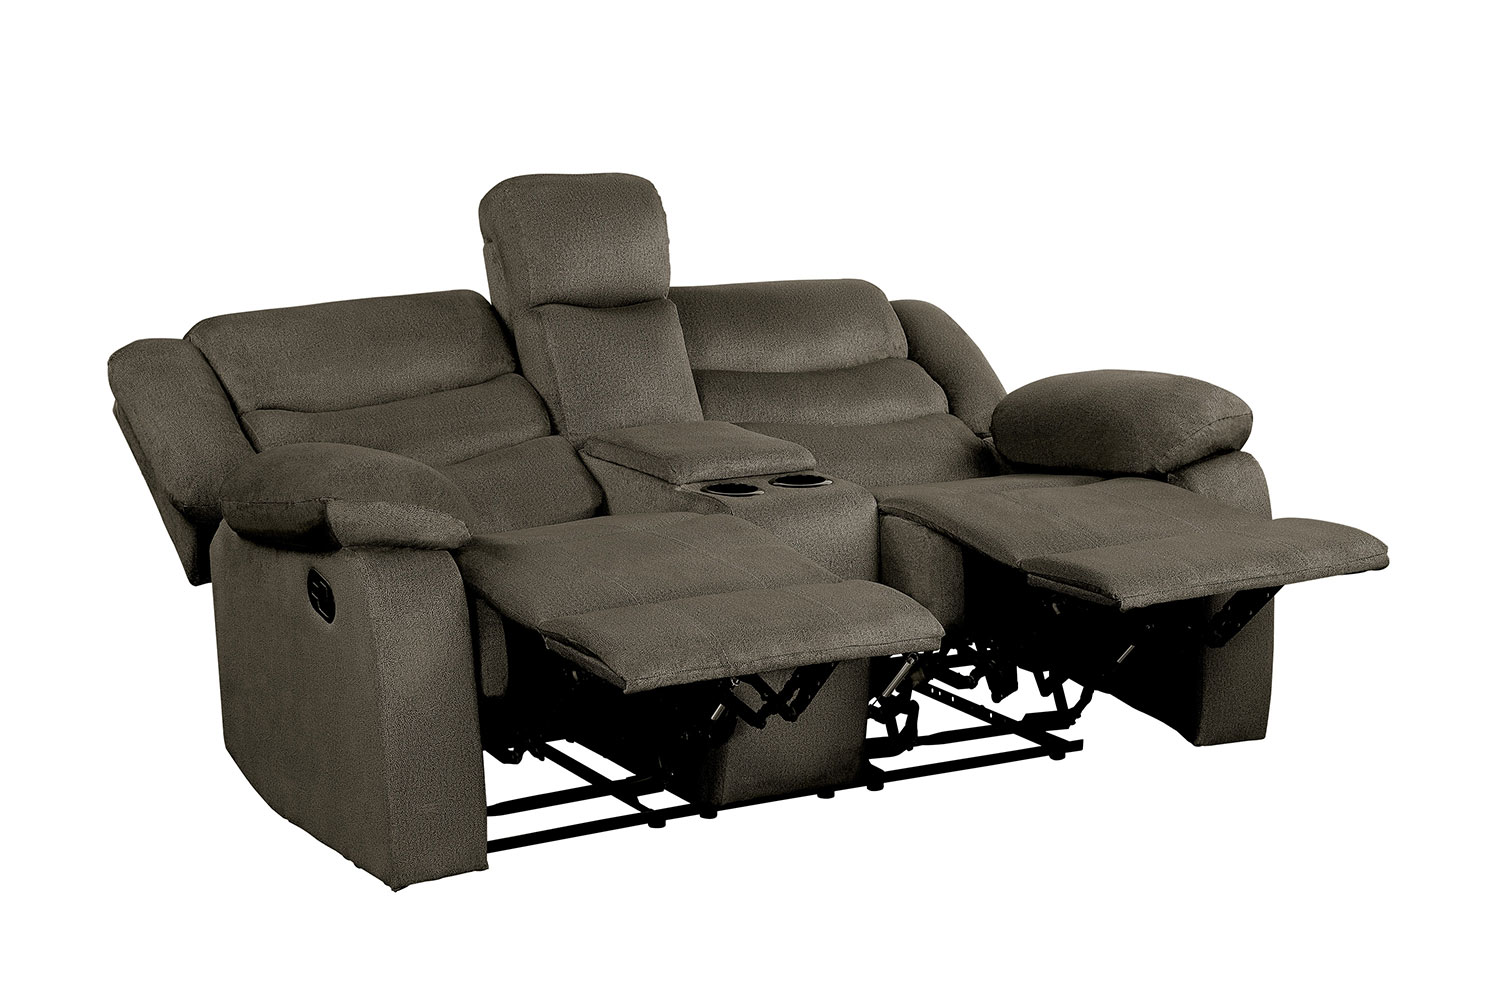 Homelegance Discus Double Reclining Love Seat with Center Console - Brown